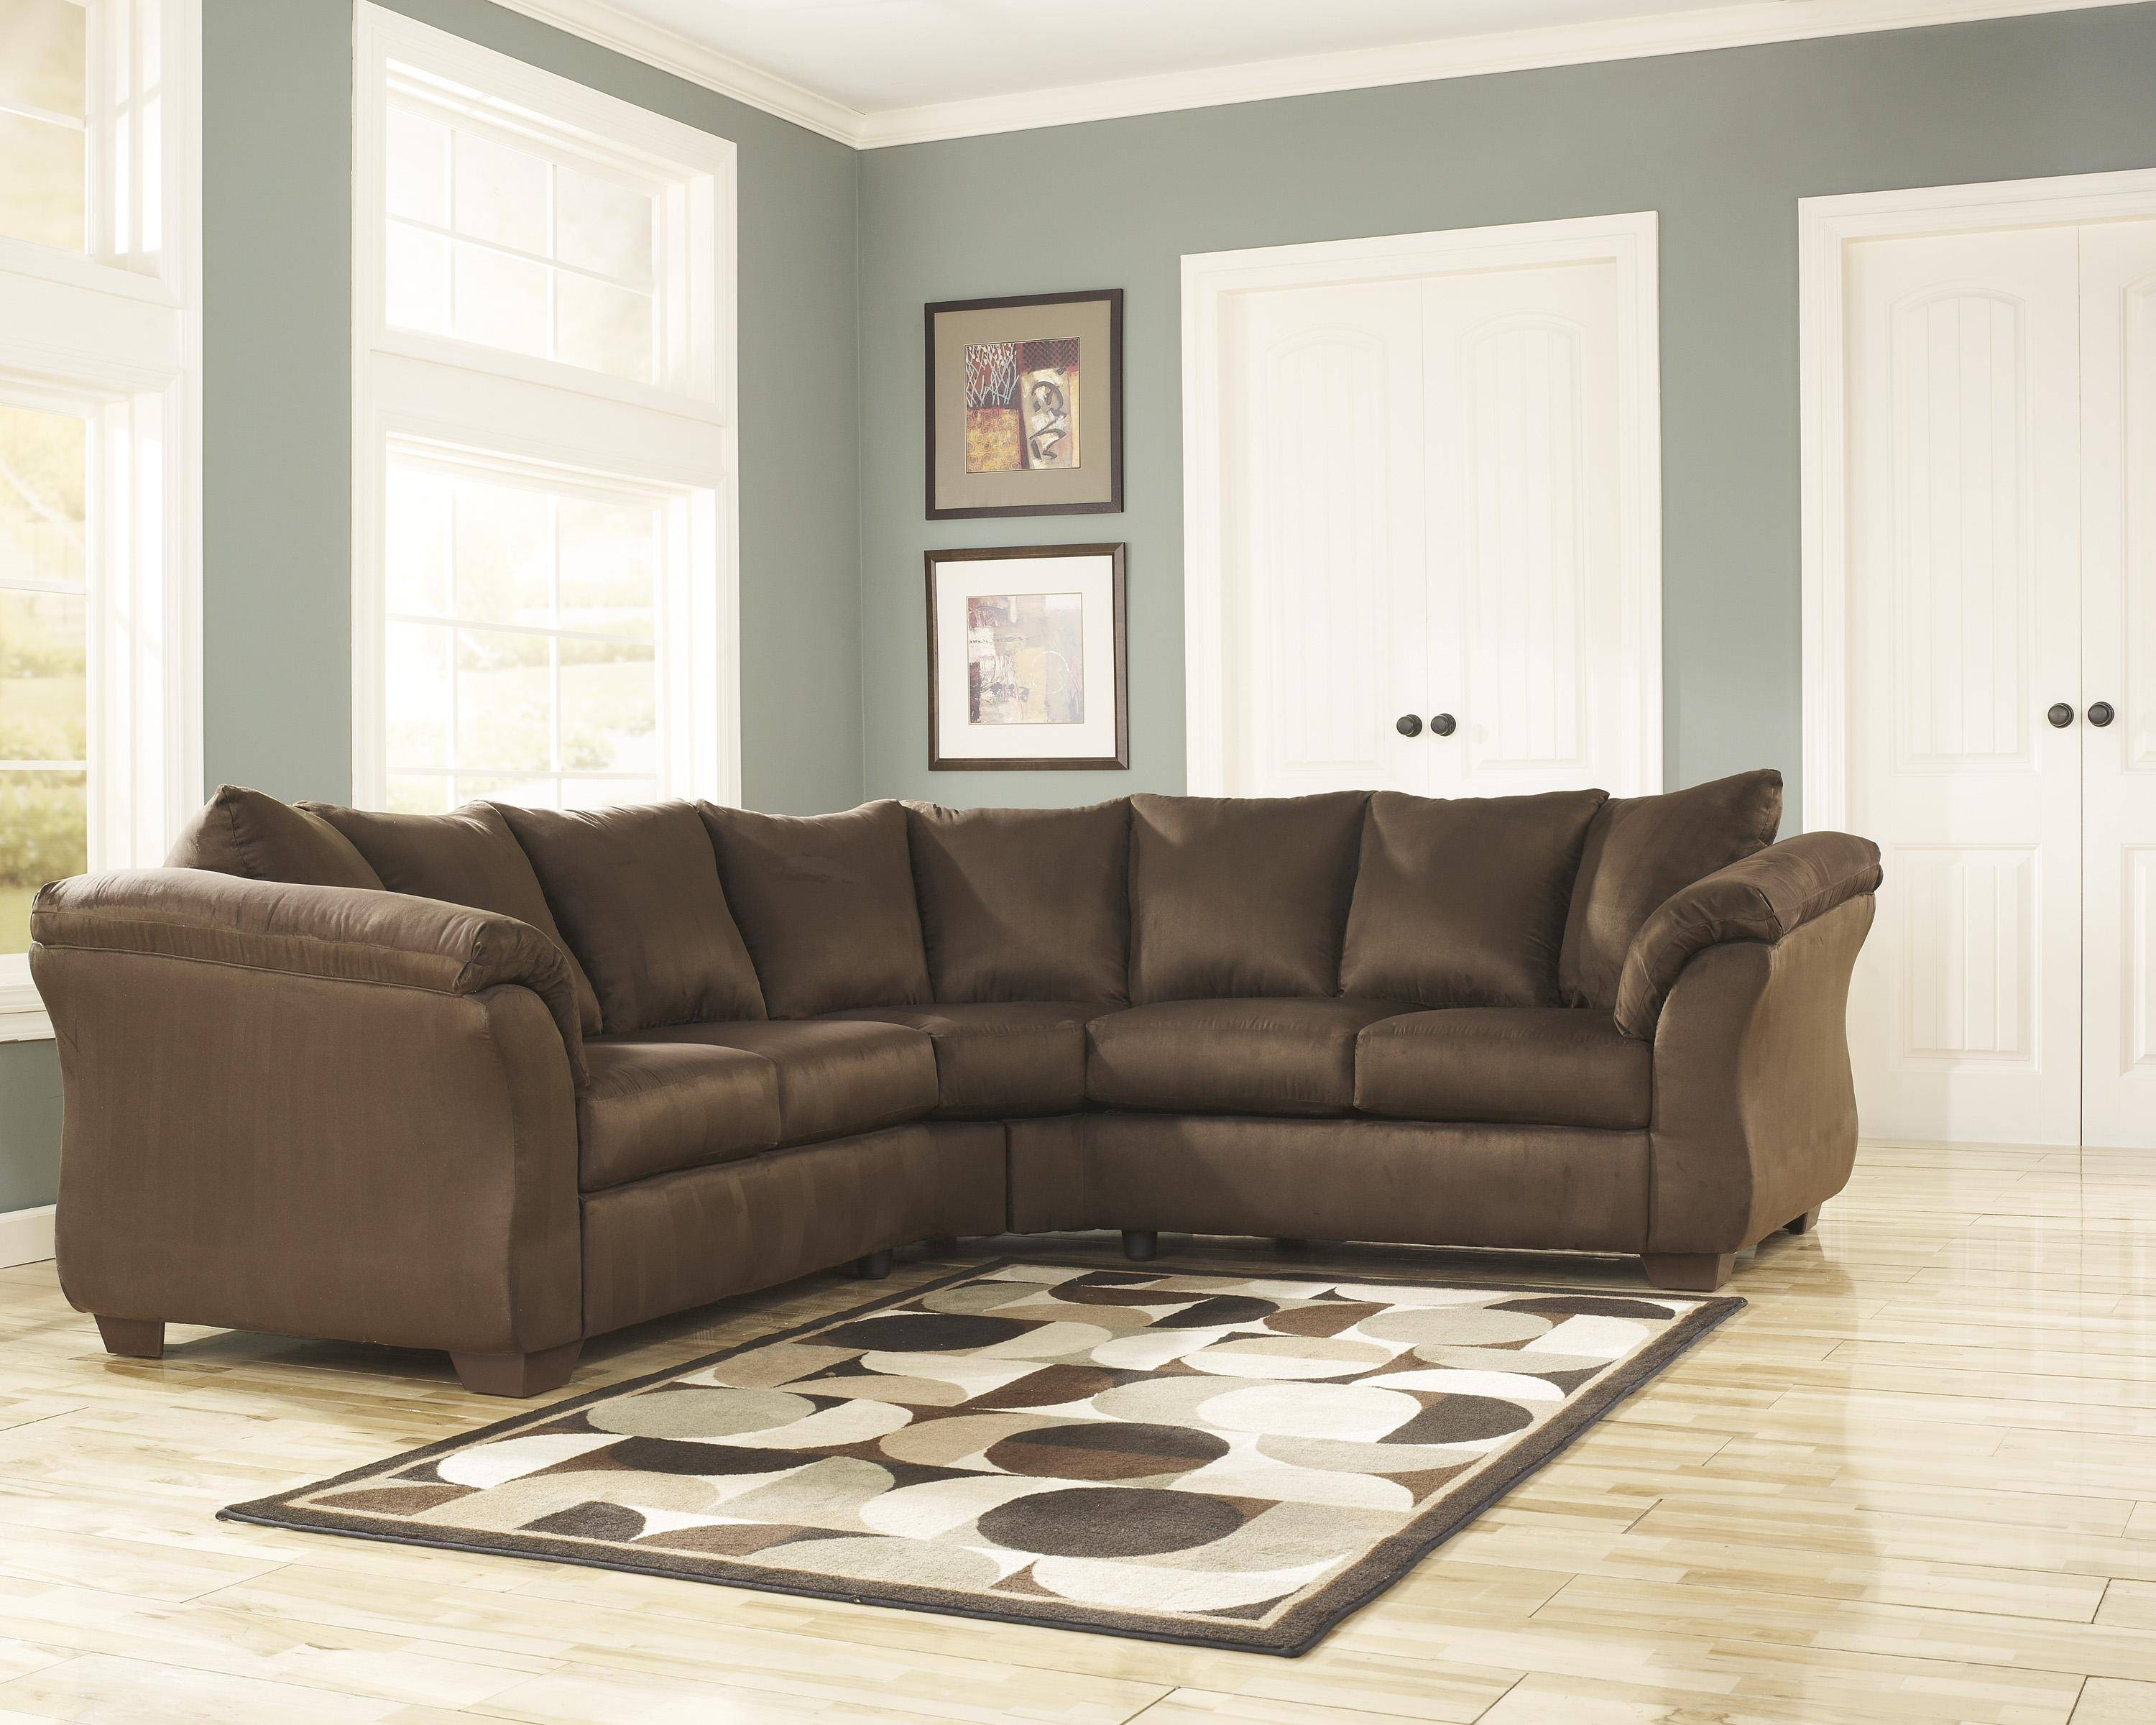 Darcy Sofa Ashley Review Ashley Darcy 2 Piece Sectional In Cafe (75004-55-56-kit